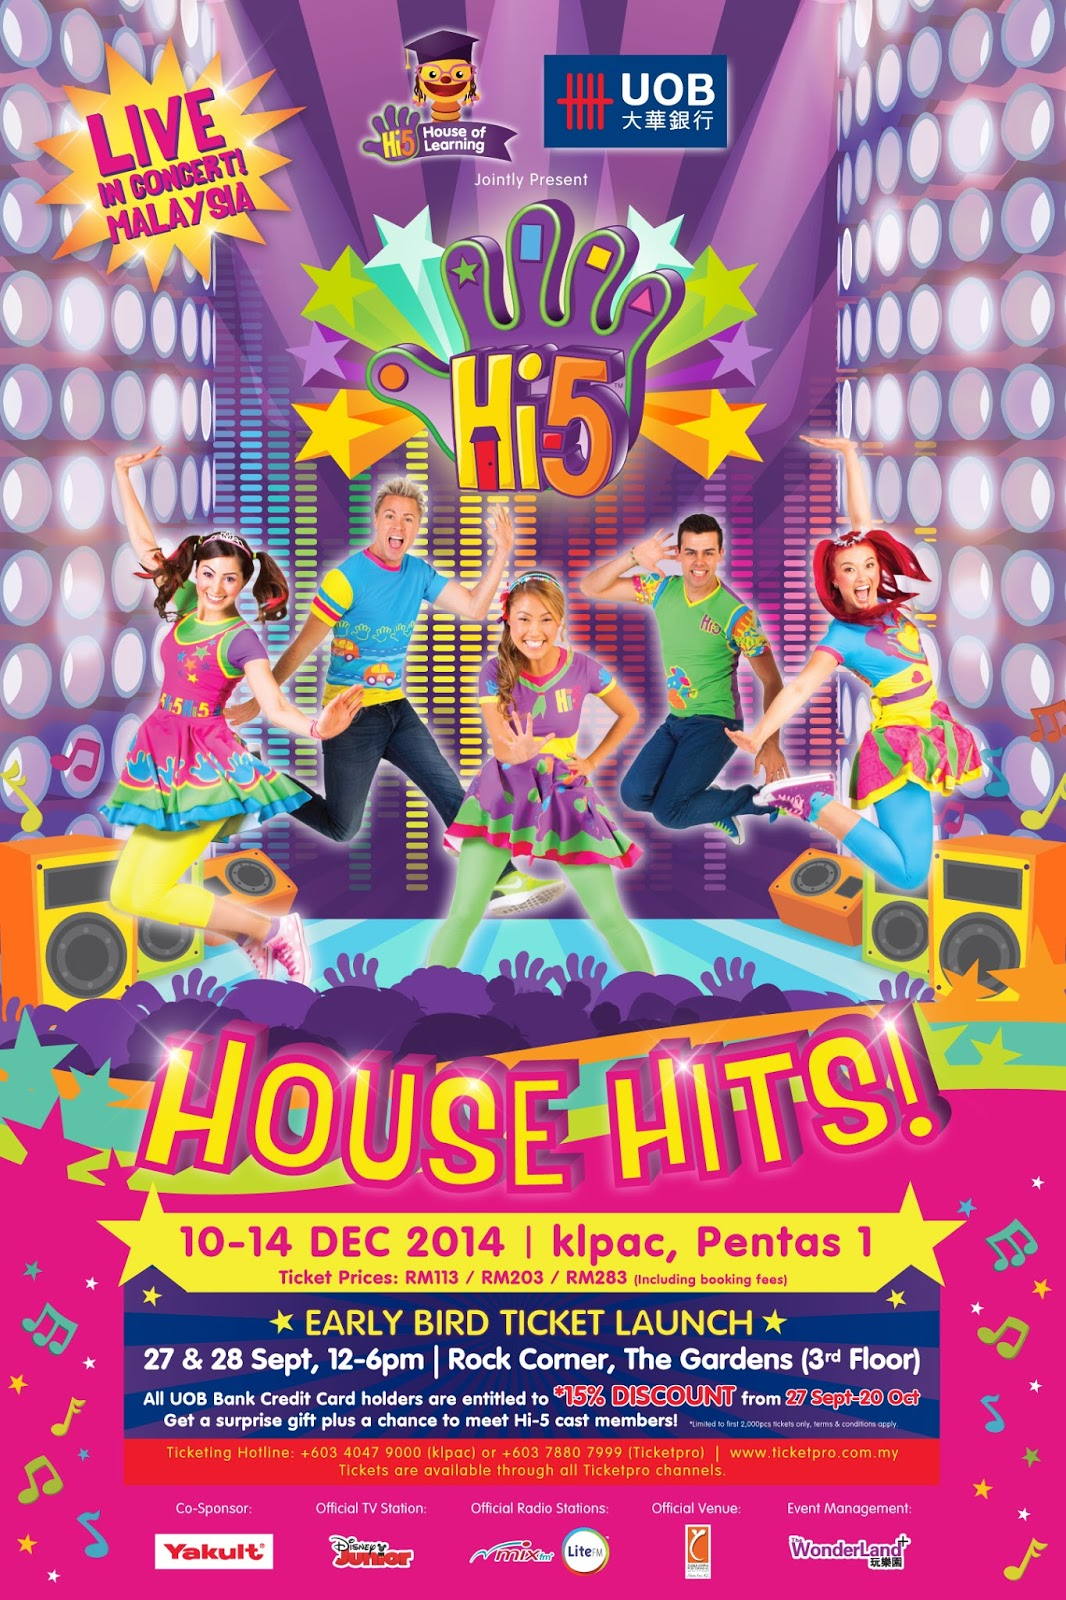 HI-5 HOUSE HITS 2014 LIVE IN MALAYSIA